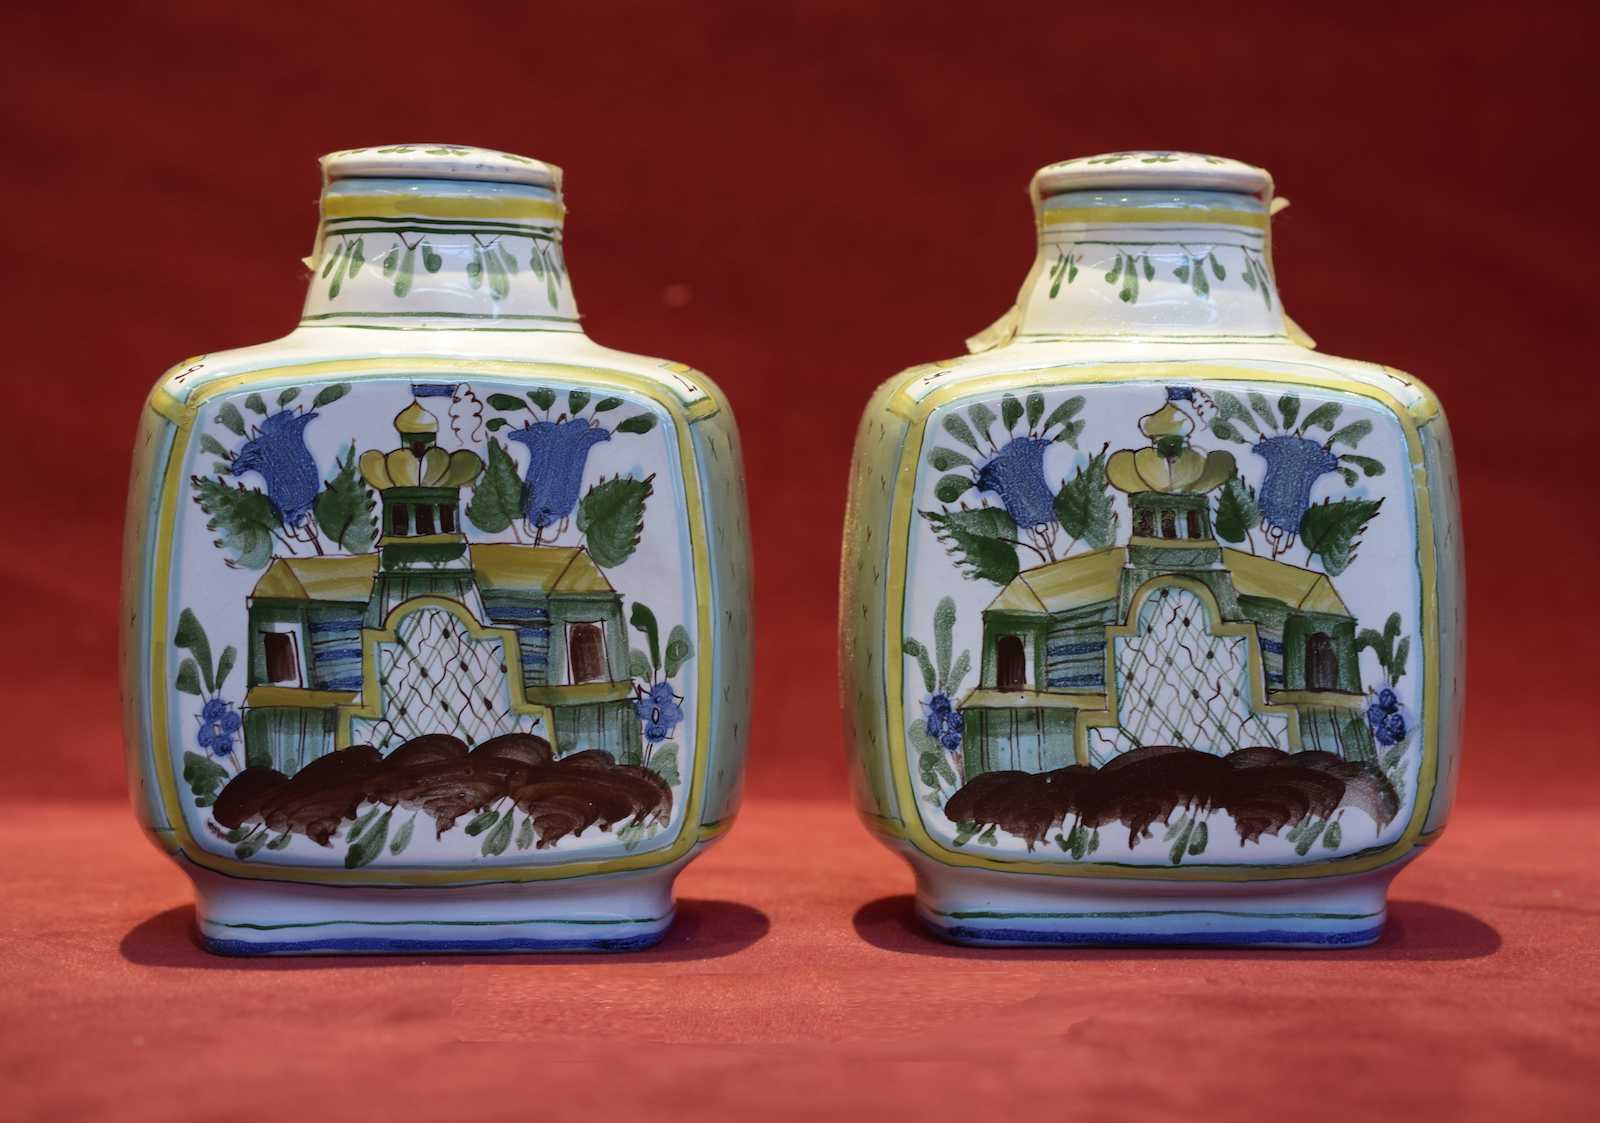 Soviet Tea Containers With Artwork